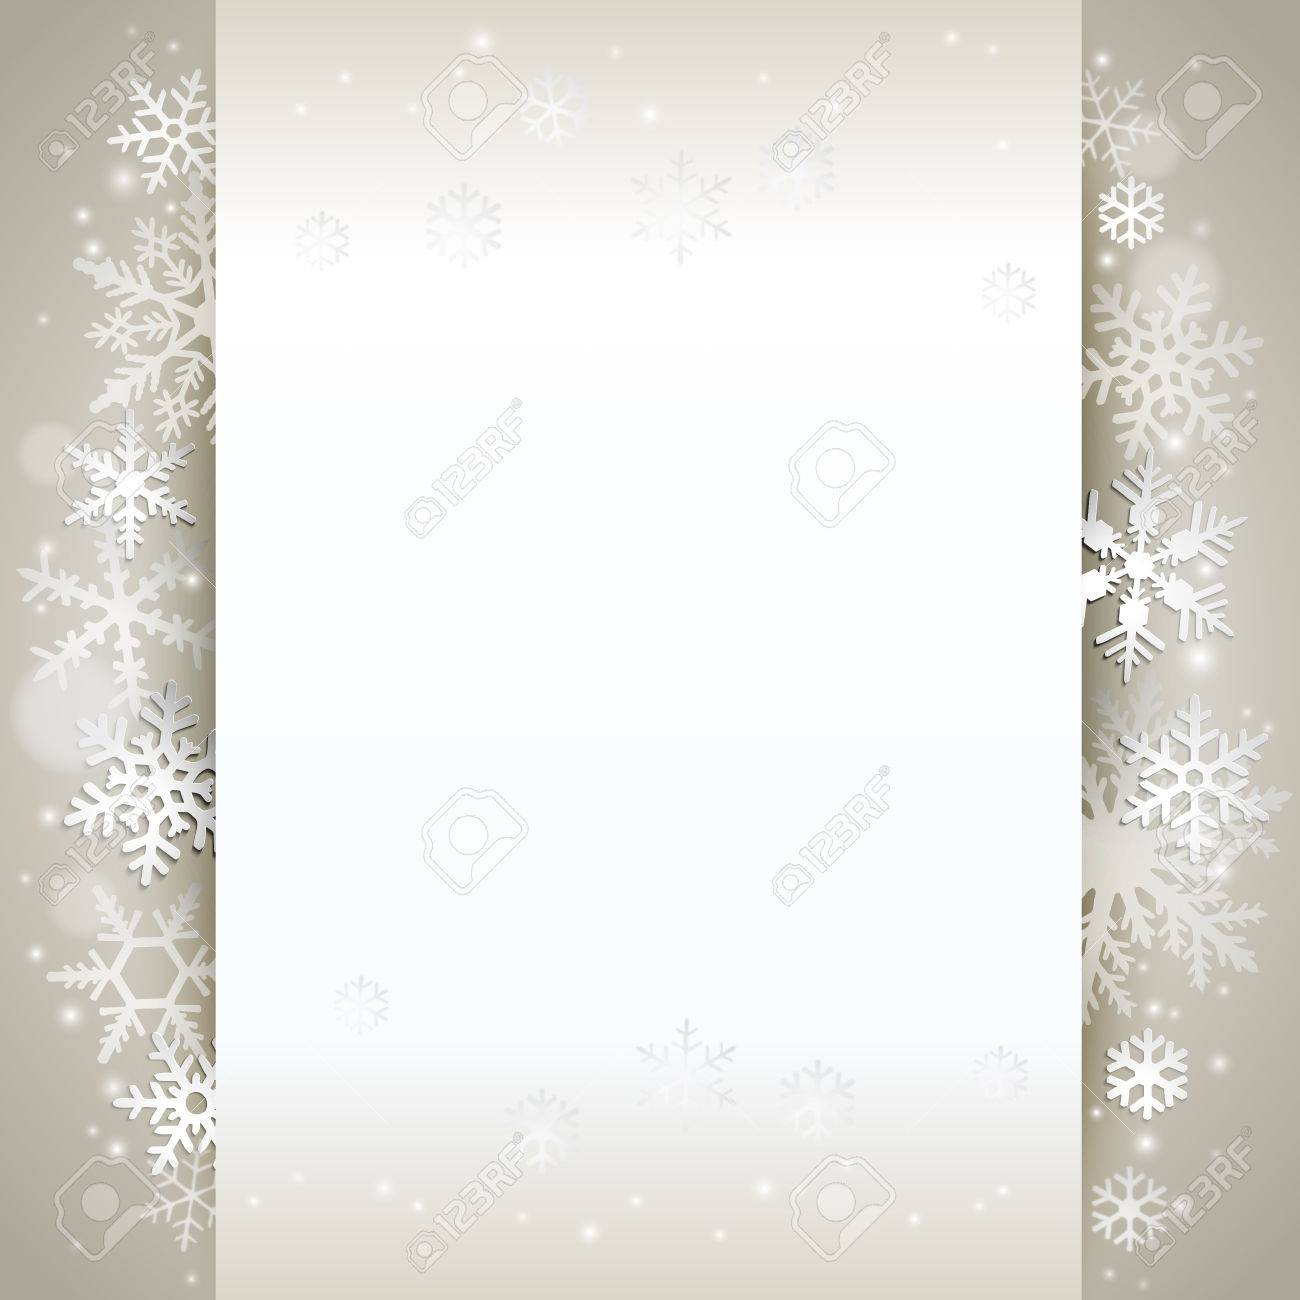 Winter holiday background card with snowflakes - 48418322